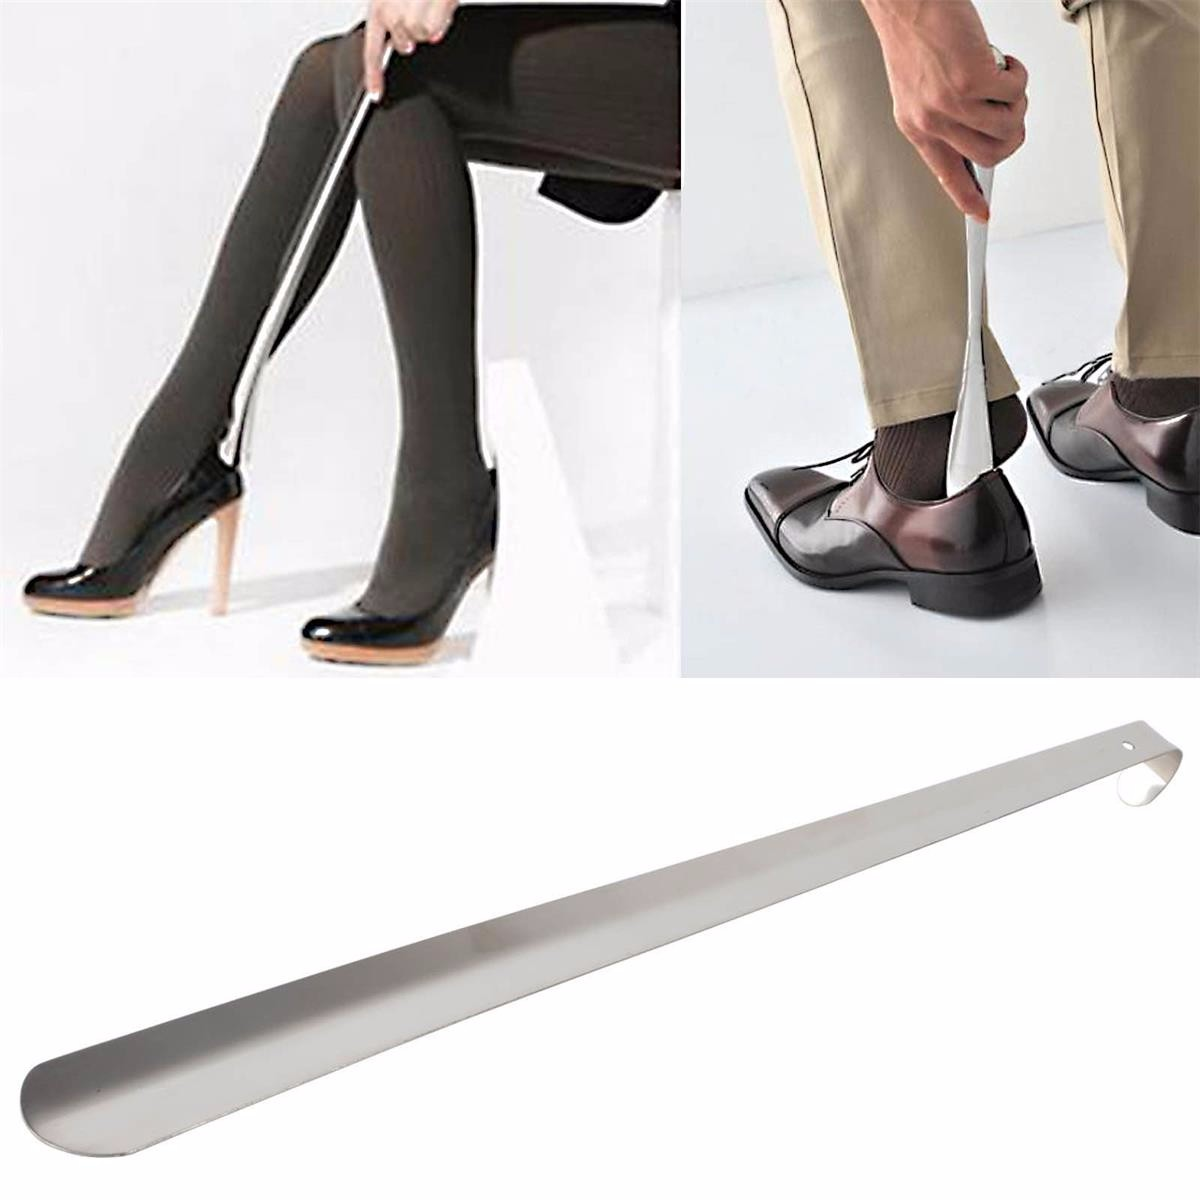 Meigar 23'' Metal Shoe Horn with Long Handle Stainless Steel Shoes Remover Shoehorn Shoe Care & Accessories for Women Men Dress Shoe Sneaker Boots